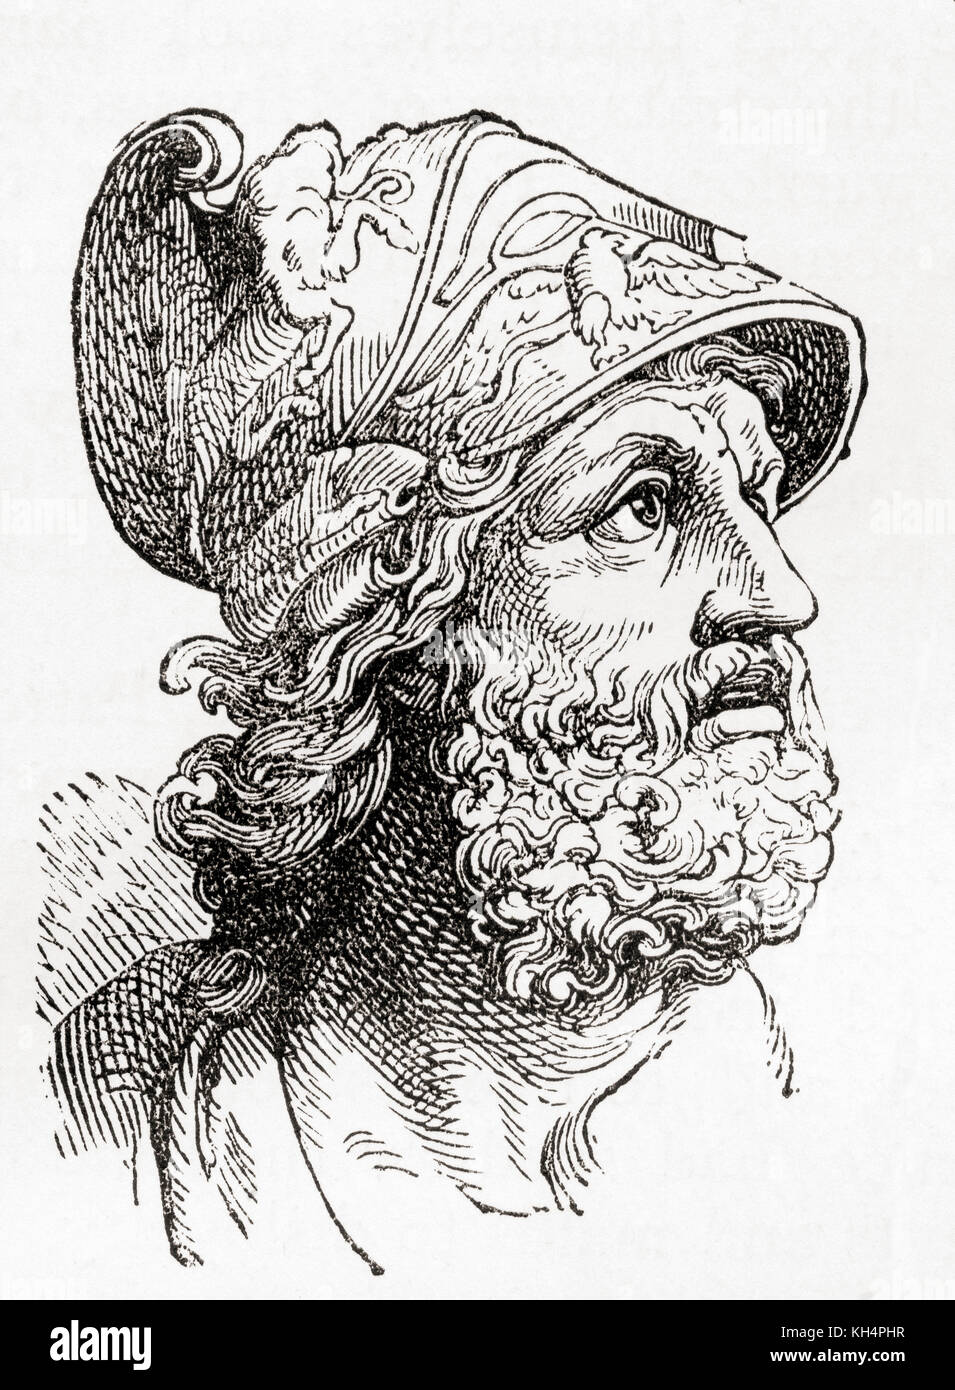 Menelaus.  According to Greek mythology, Menelaus was a king of Mycenaean (pre-Dorian) Sparta and the husband of - Stock Image